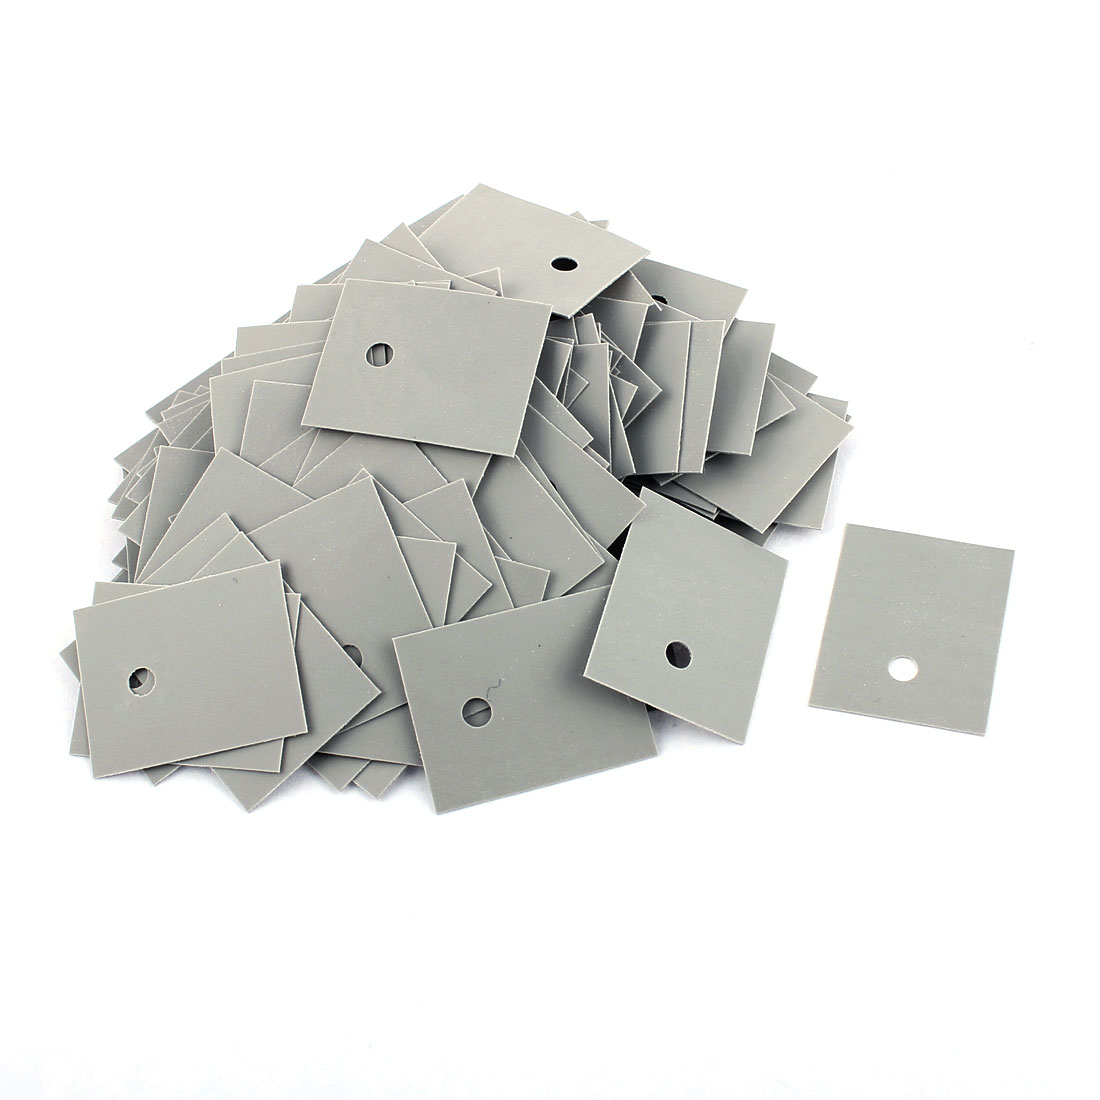 150 Pcs 25mm x 20mm x 0.3mm Silicone Thermal Insulation Pad Sheet